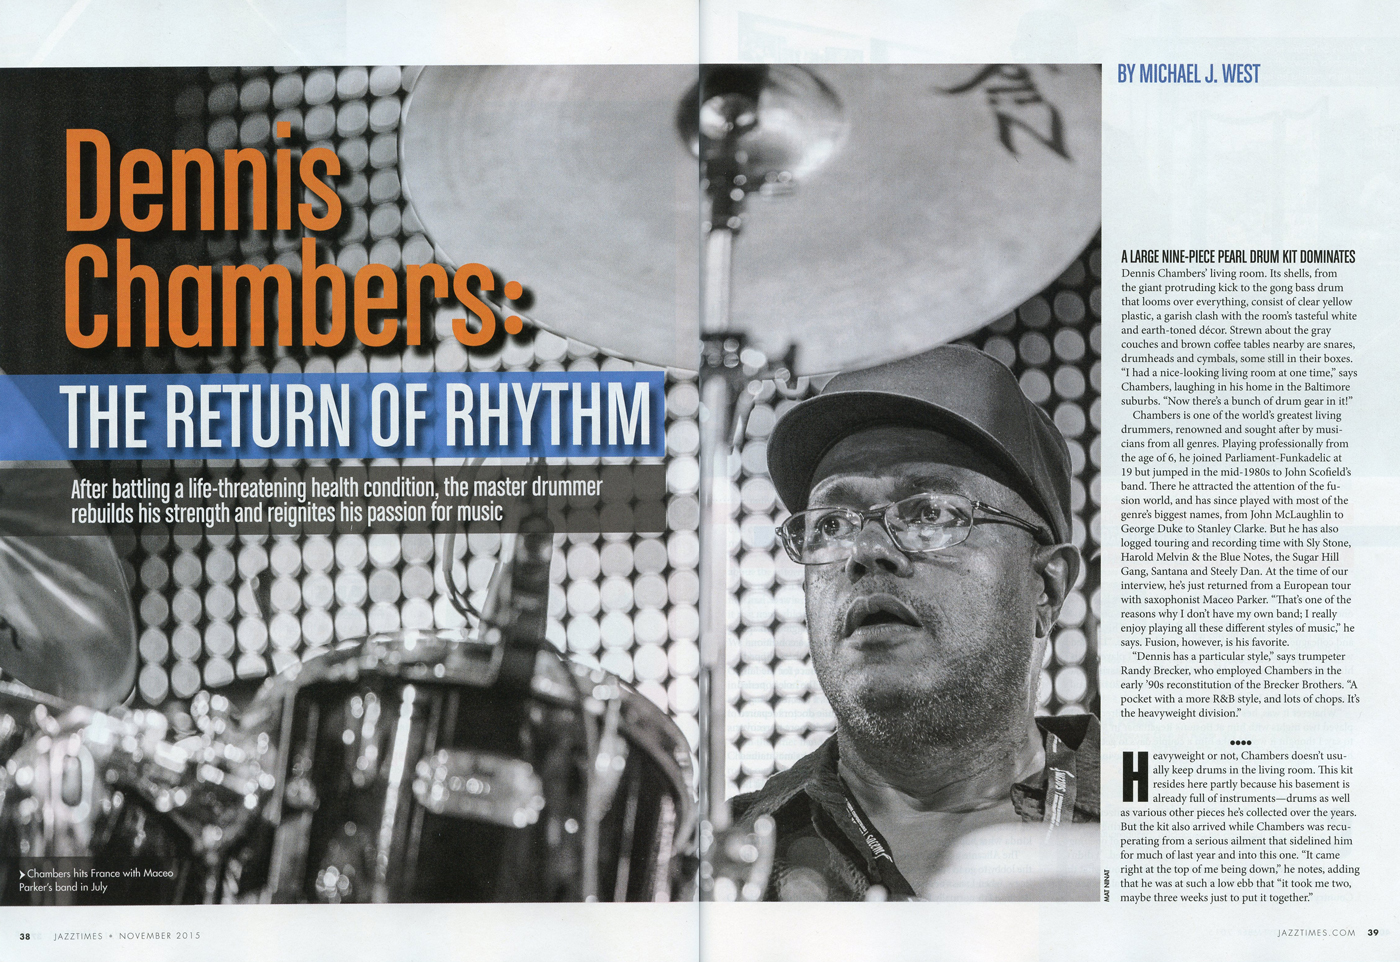 Jazz Times Magazine - November 2015 - Mat Ninat double page. Dennis Chambers photo.